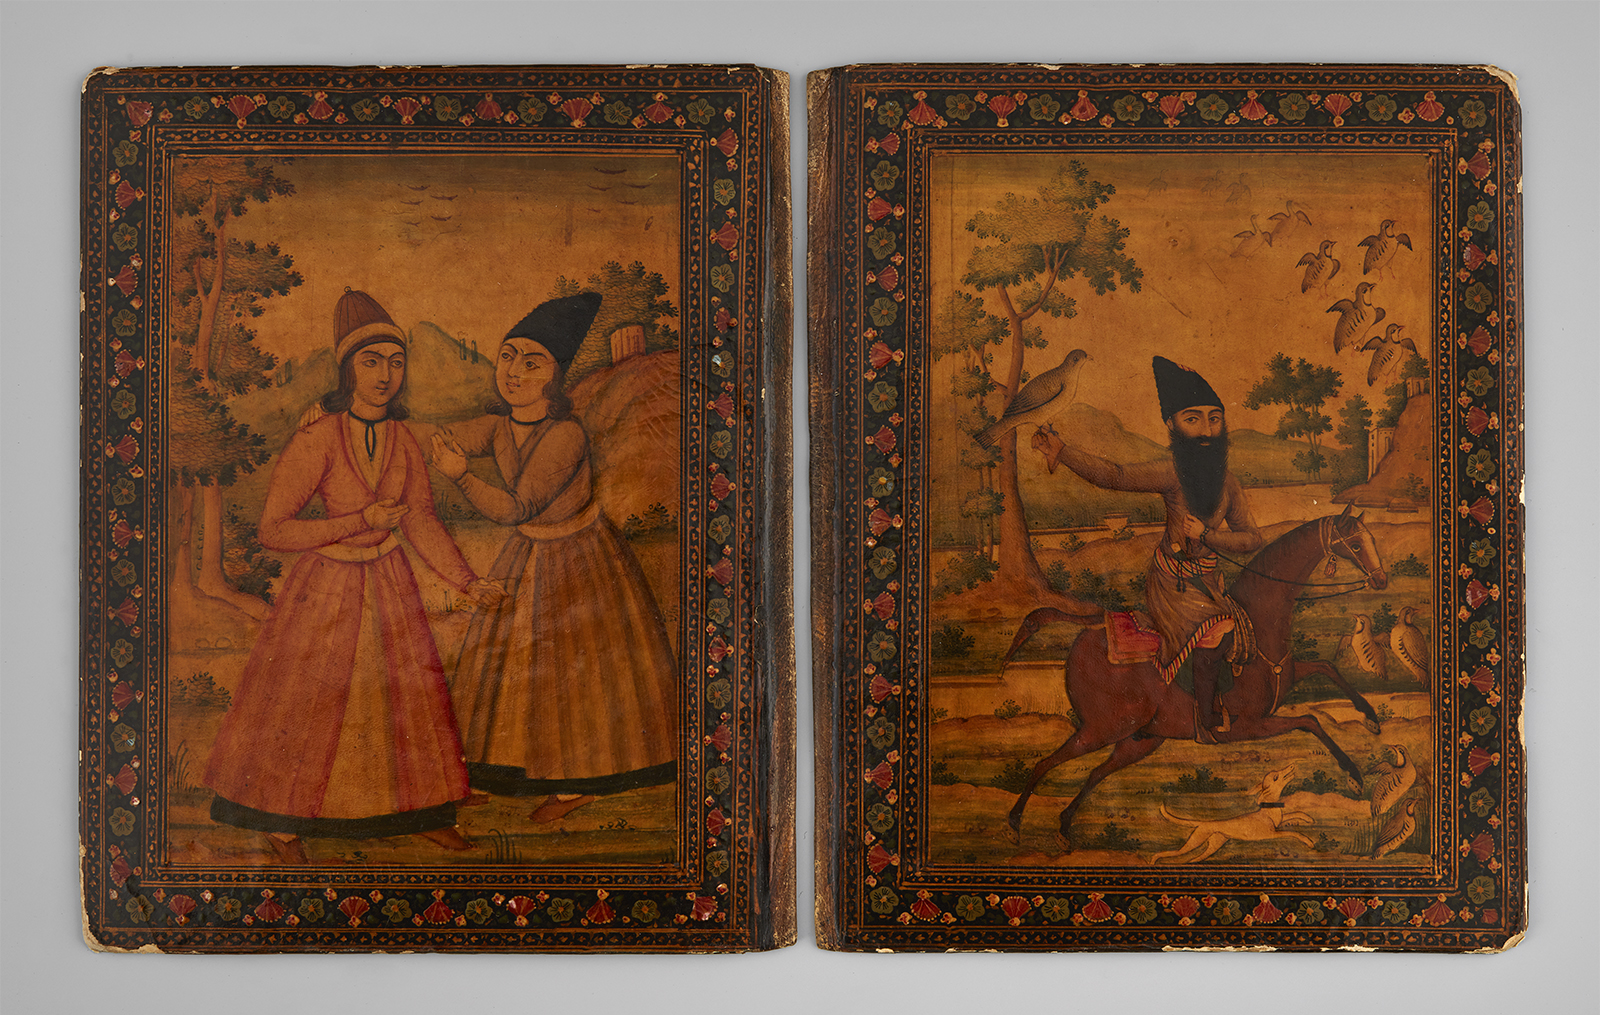 A pair of lacquer book covers from 19th-century Iran, with one panel showing a youth, possibly young prince, talking with a young travelling dervish, while the other panel shows a bearded dervish riding a horse.